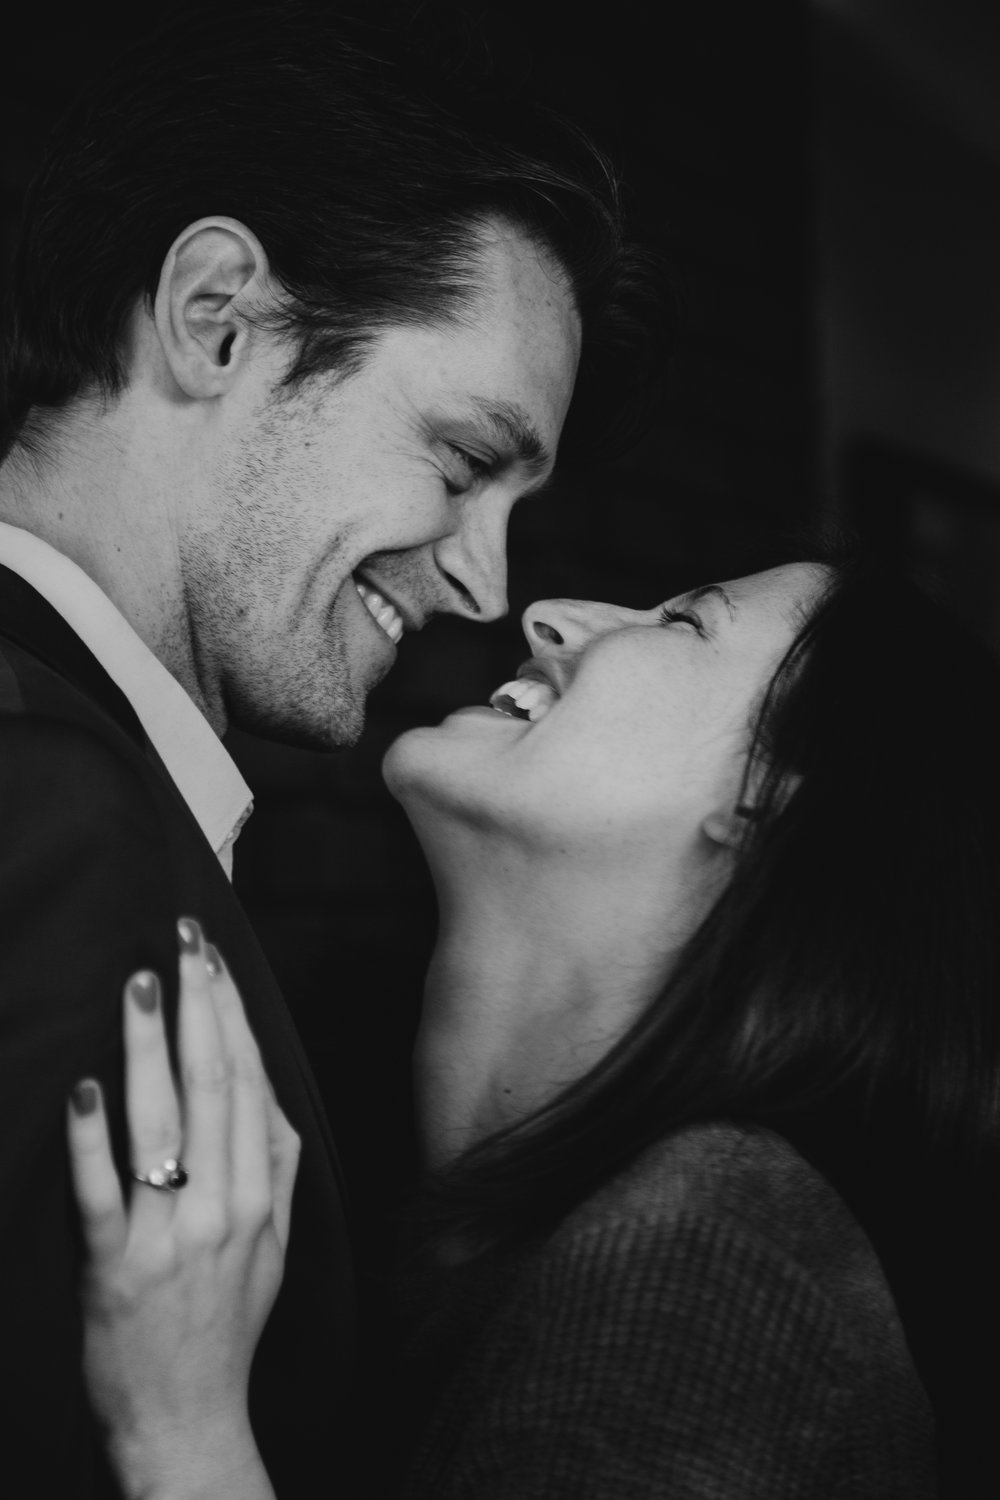 los_angeles_engagement_wedding_photographer_chicago_photographer-10.jpg